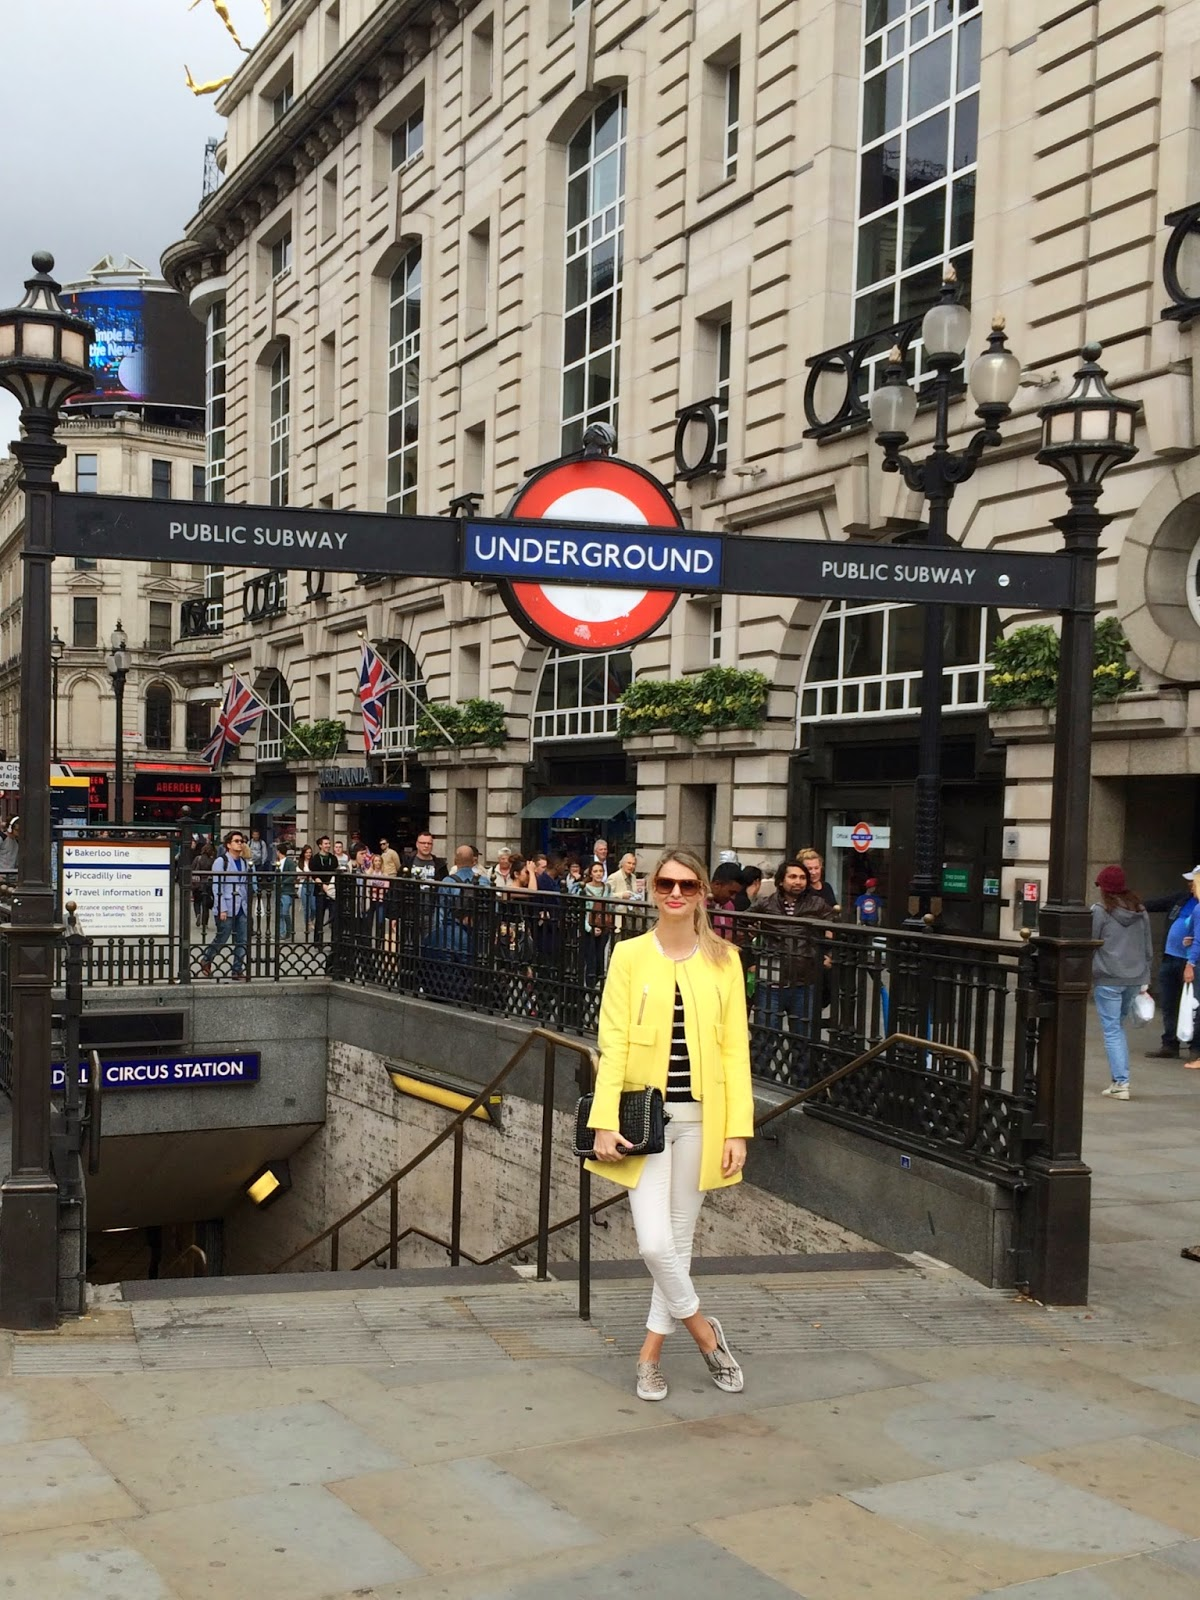 London underground, yellow coat, zara yellow coat, zara sale, zara sale coat, zara slipons, j brand jeans, j brand skinny jeans, piccadilly, oxford circus, london